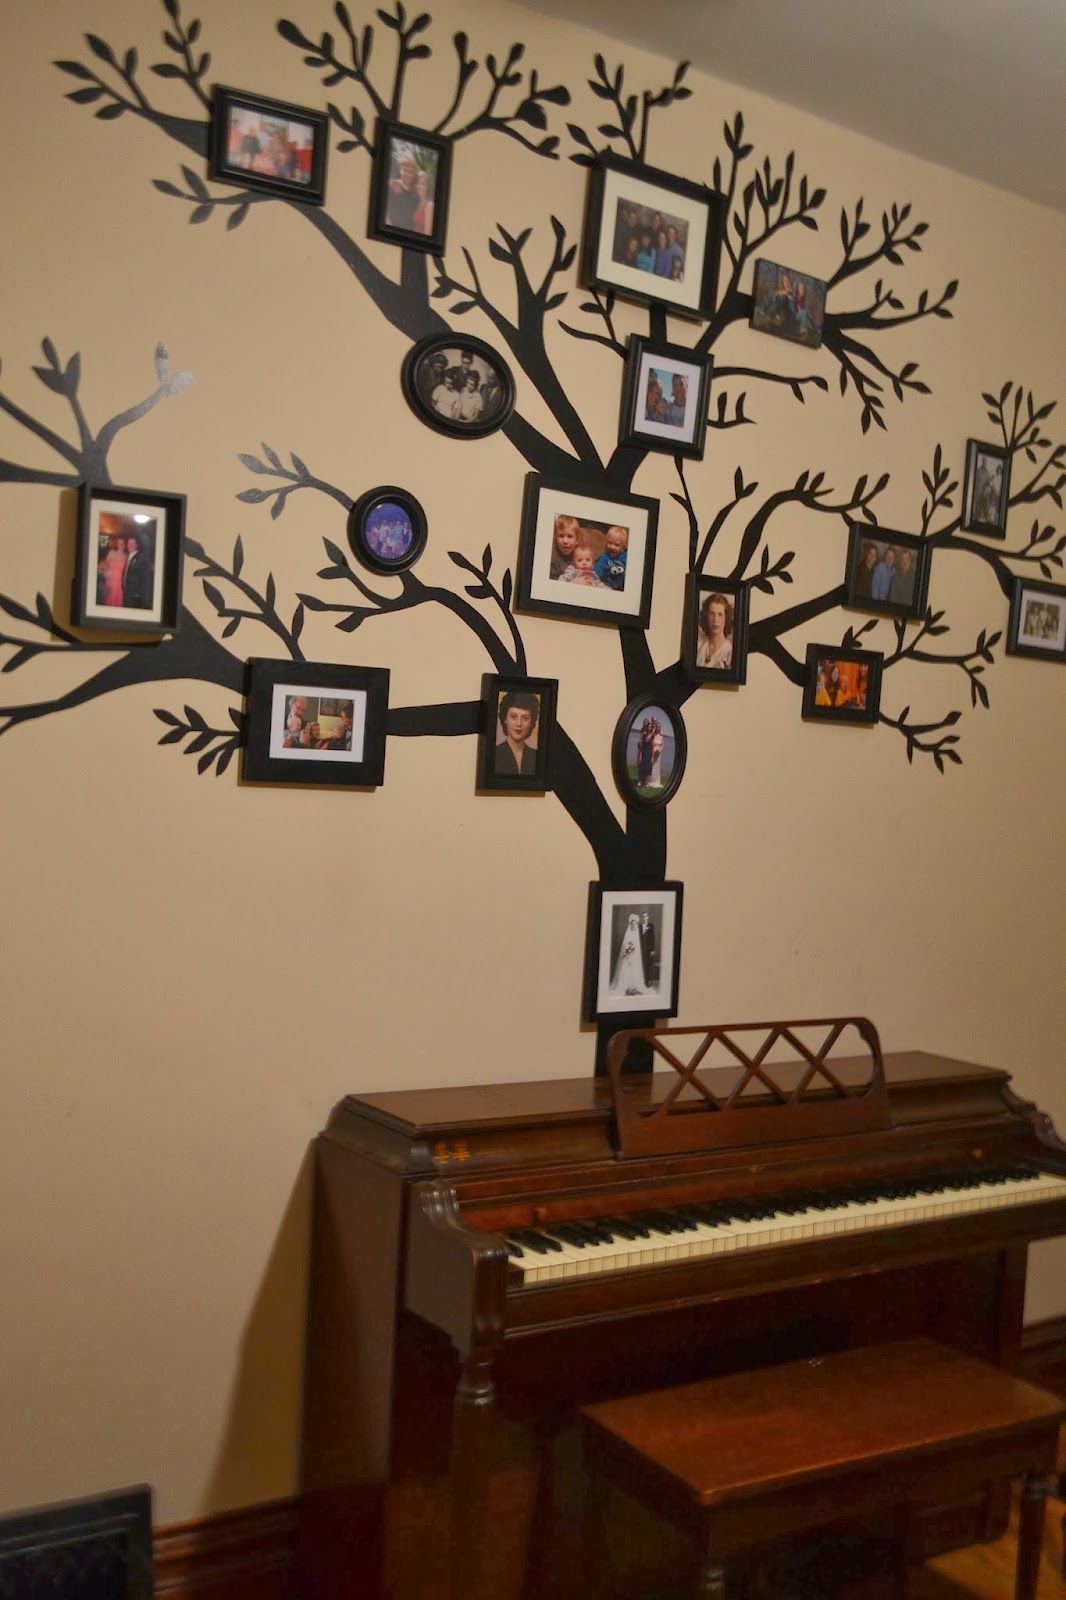 Picture frame family tree wall art tree decals trendy wall designs - Tutorial On How To Make A Removable Family Tree Wall Decal Out Of Black Contact Paper